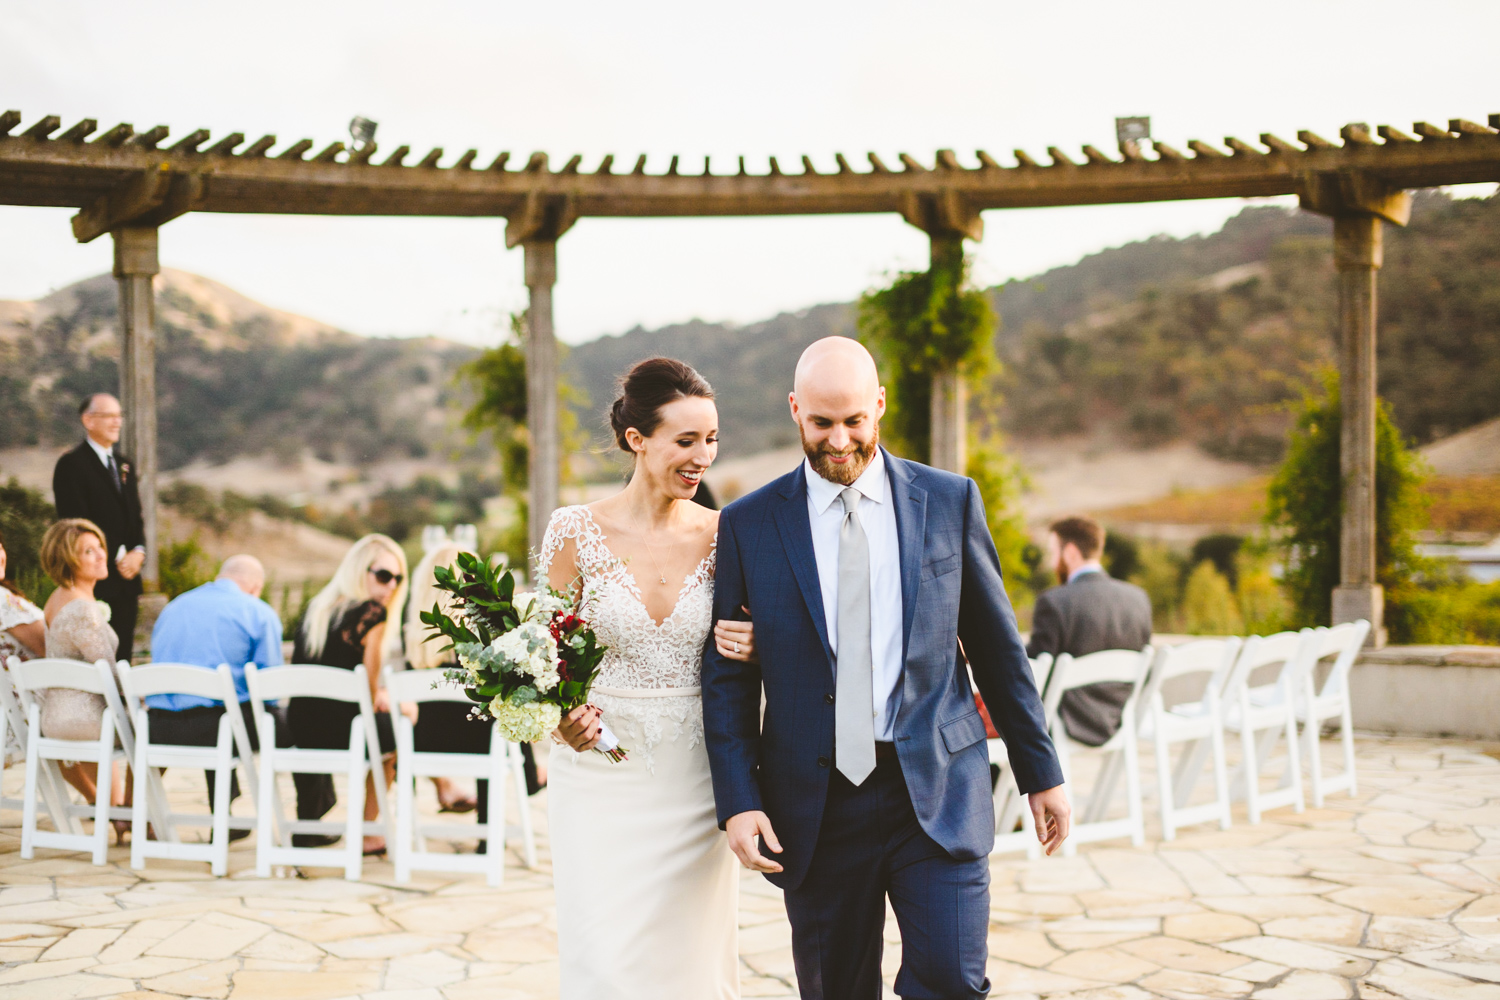 017 - bride and groom exit down the aisle in california.jpg